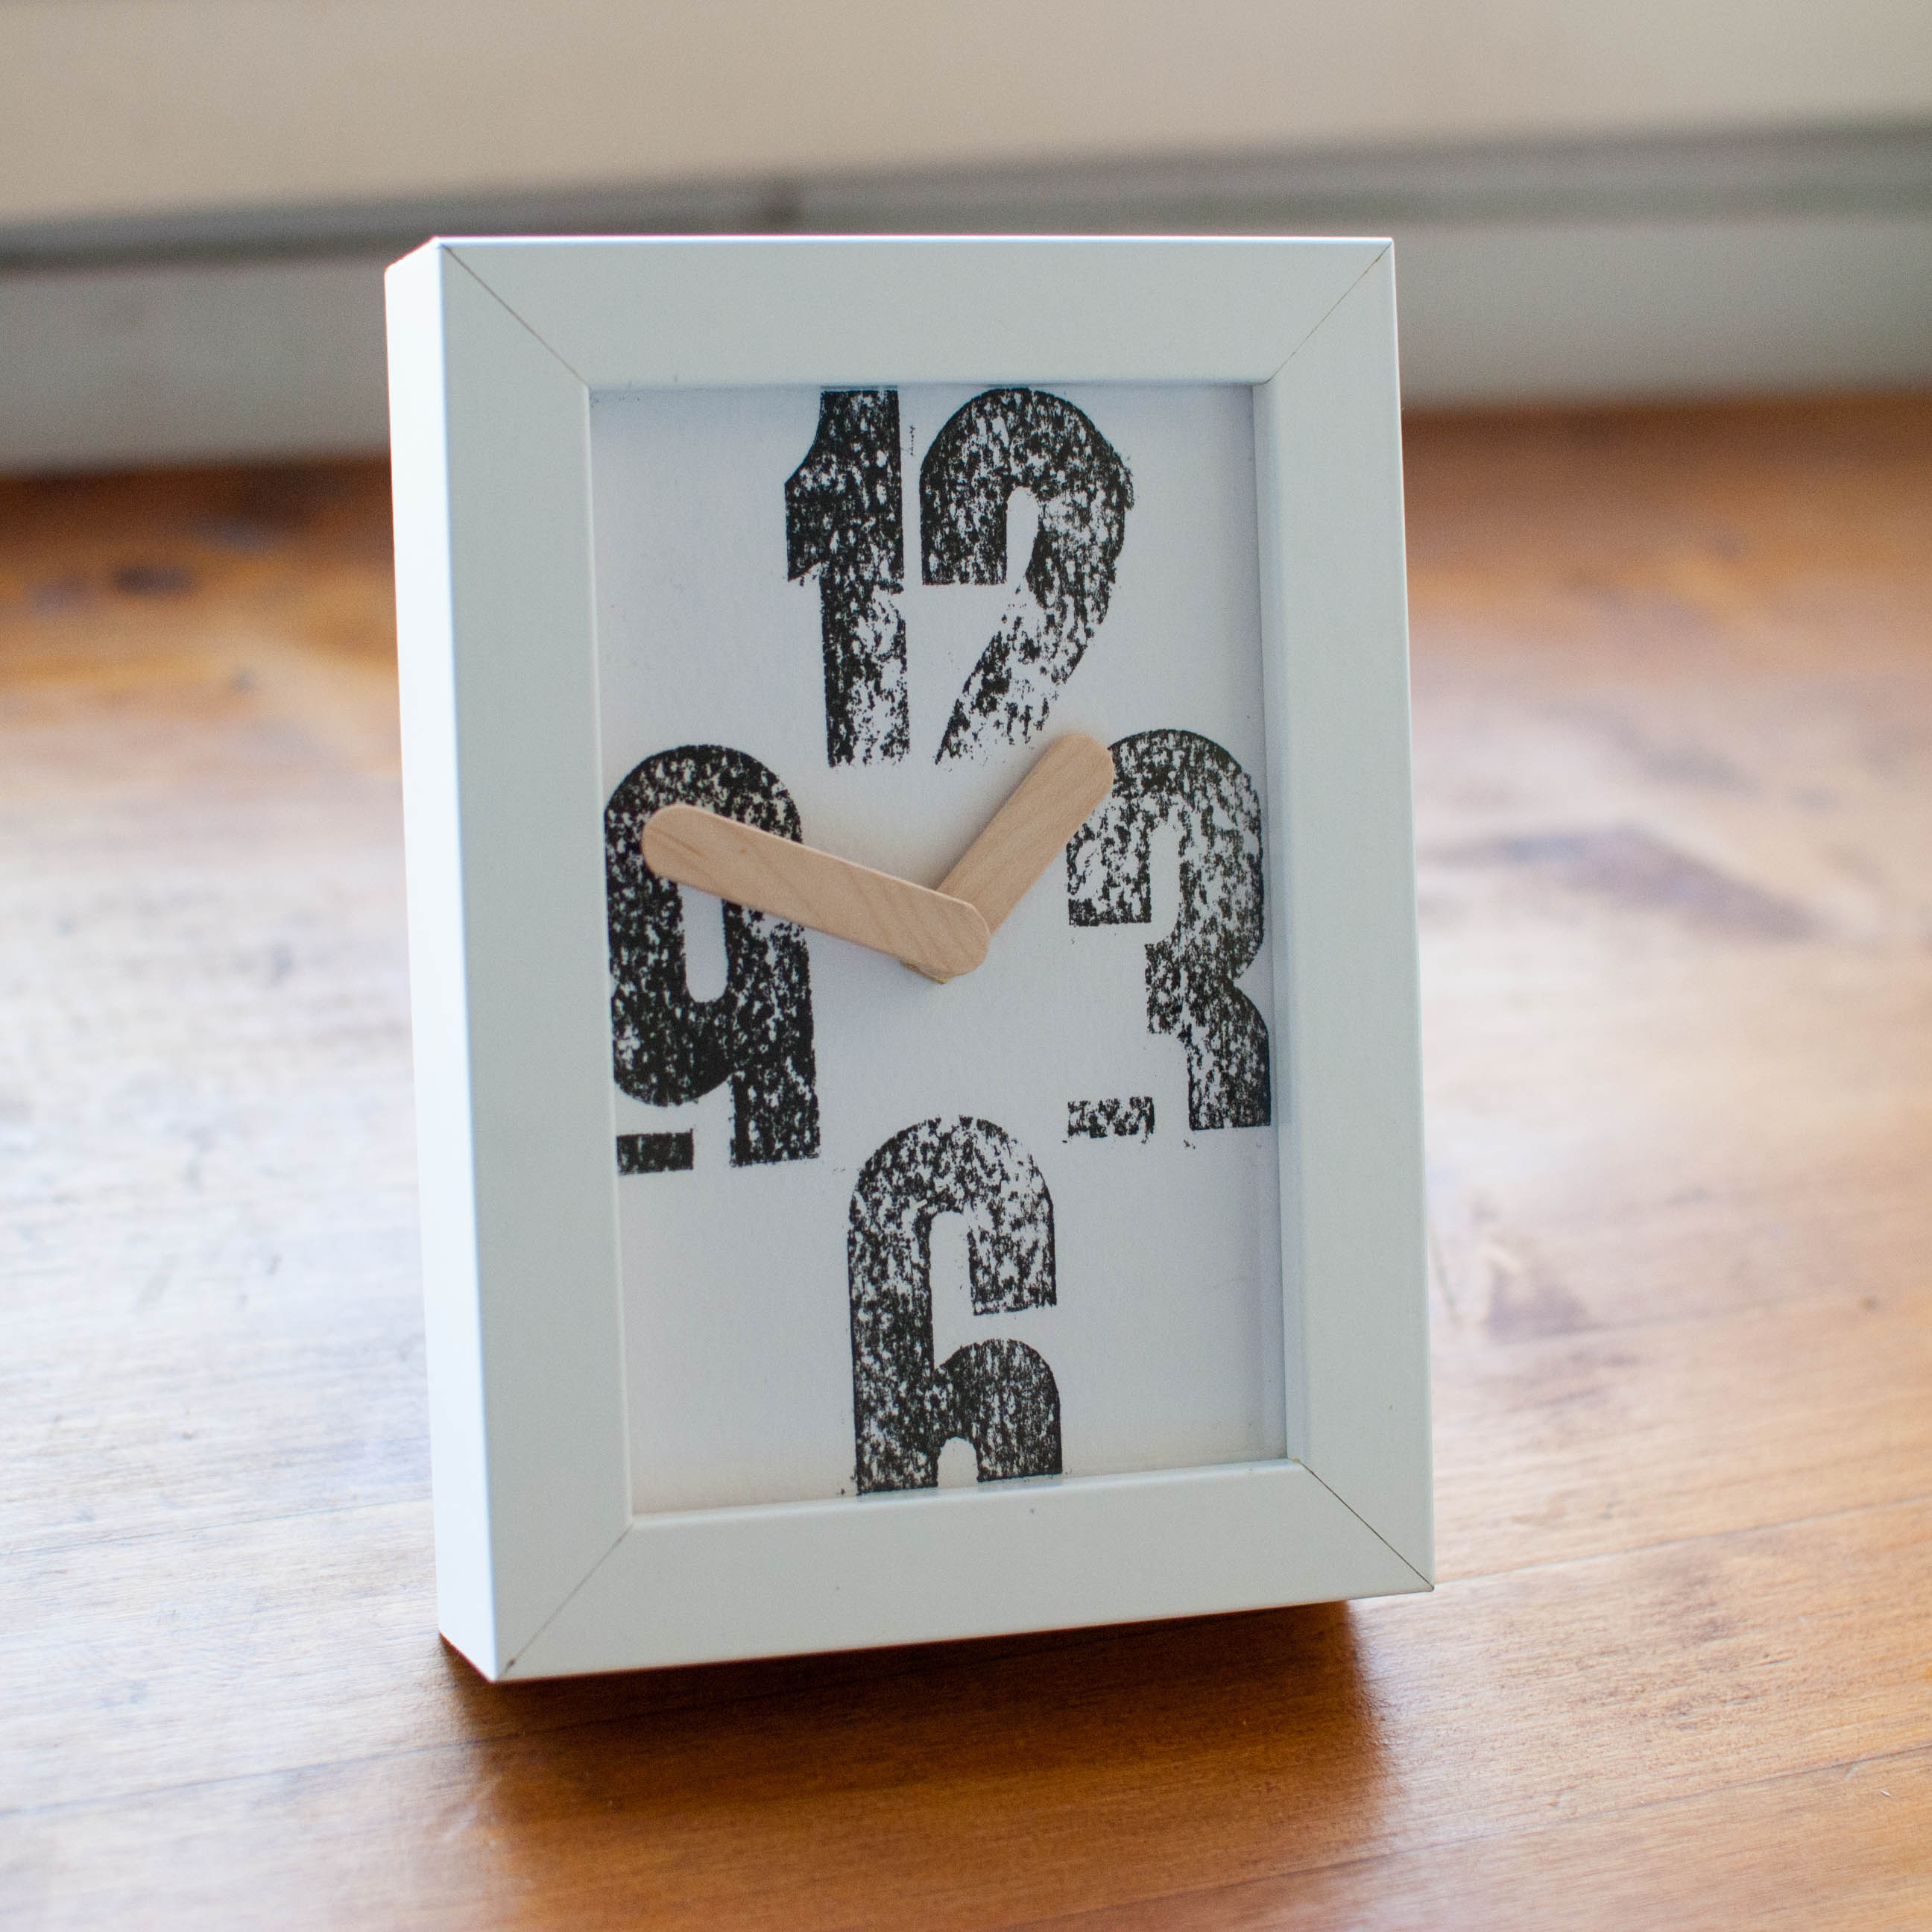 Rustic letterpress design clock handmade for Handmade home decorations